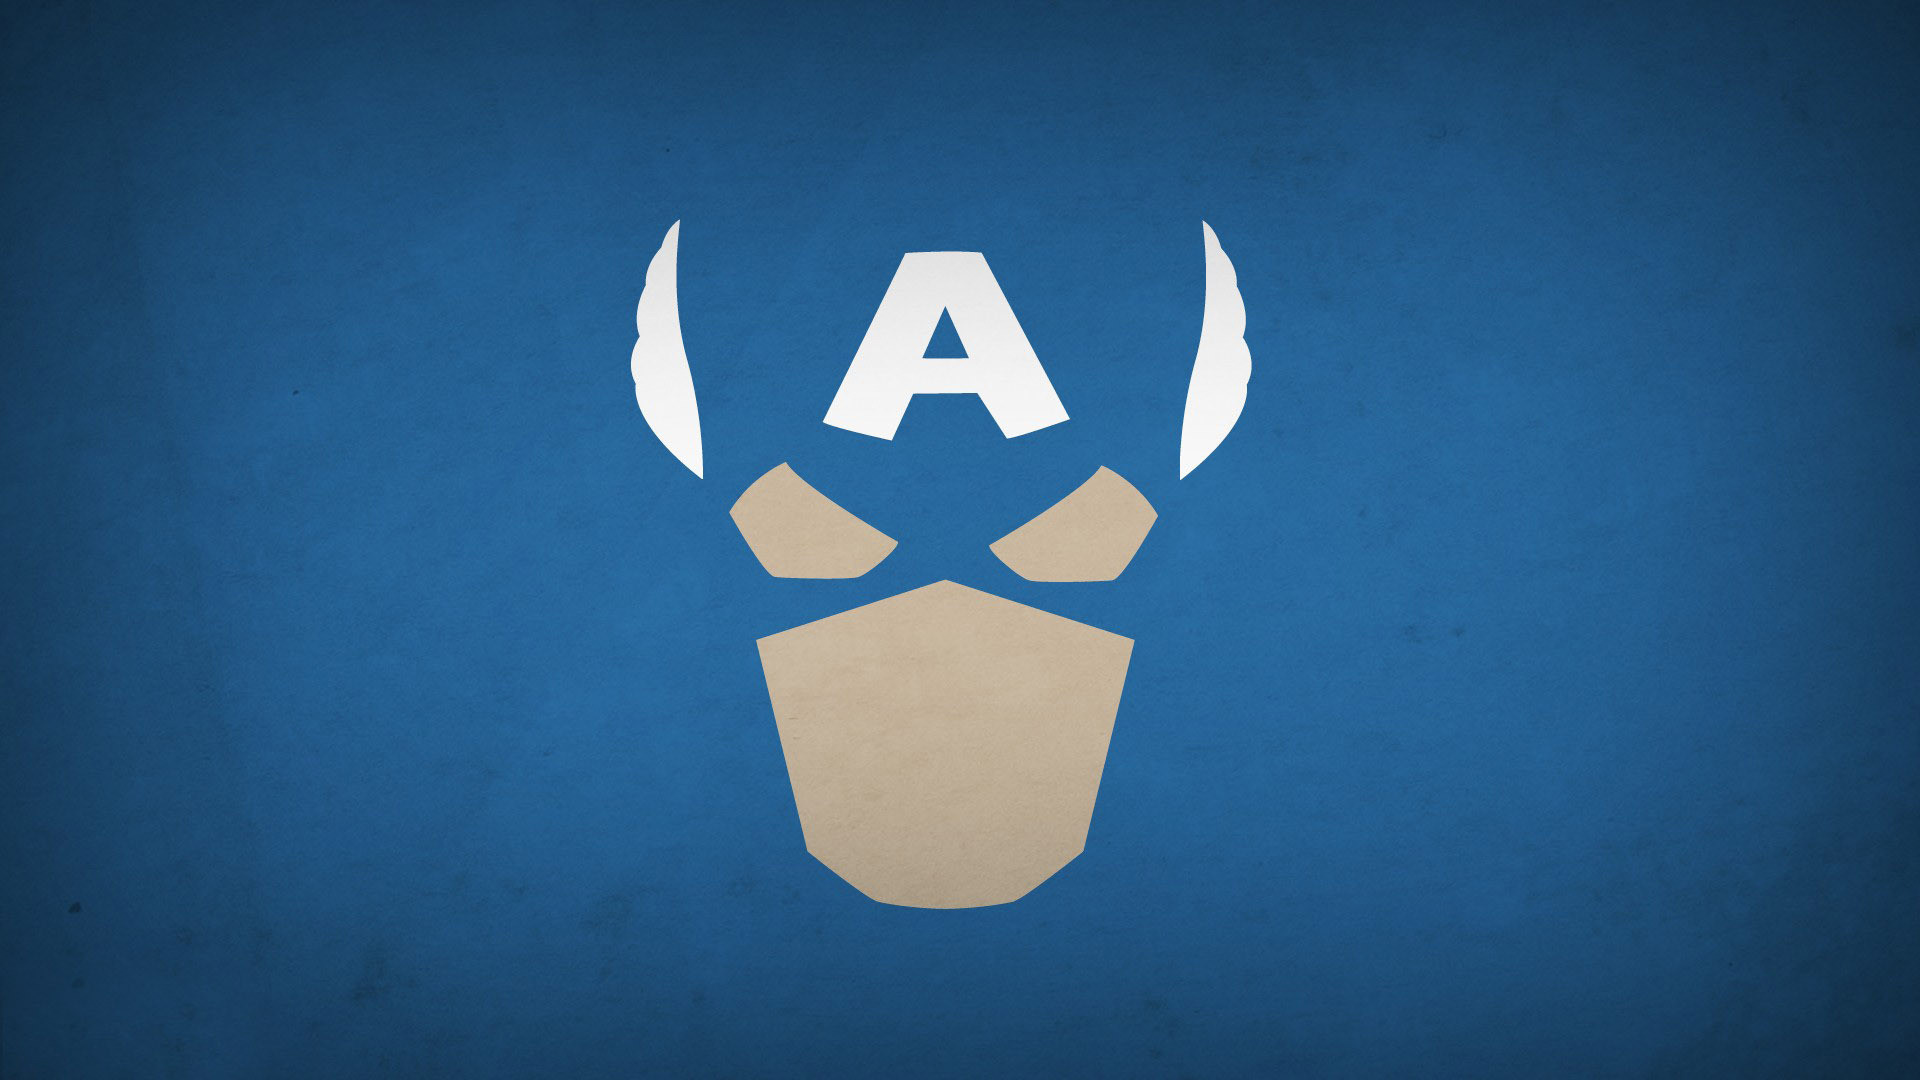 Blue Background Dc Comics Superheroes Wonder Woman free iPhone or Android  Full HD wallpaper.